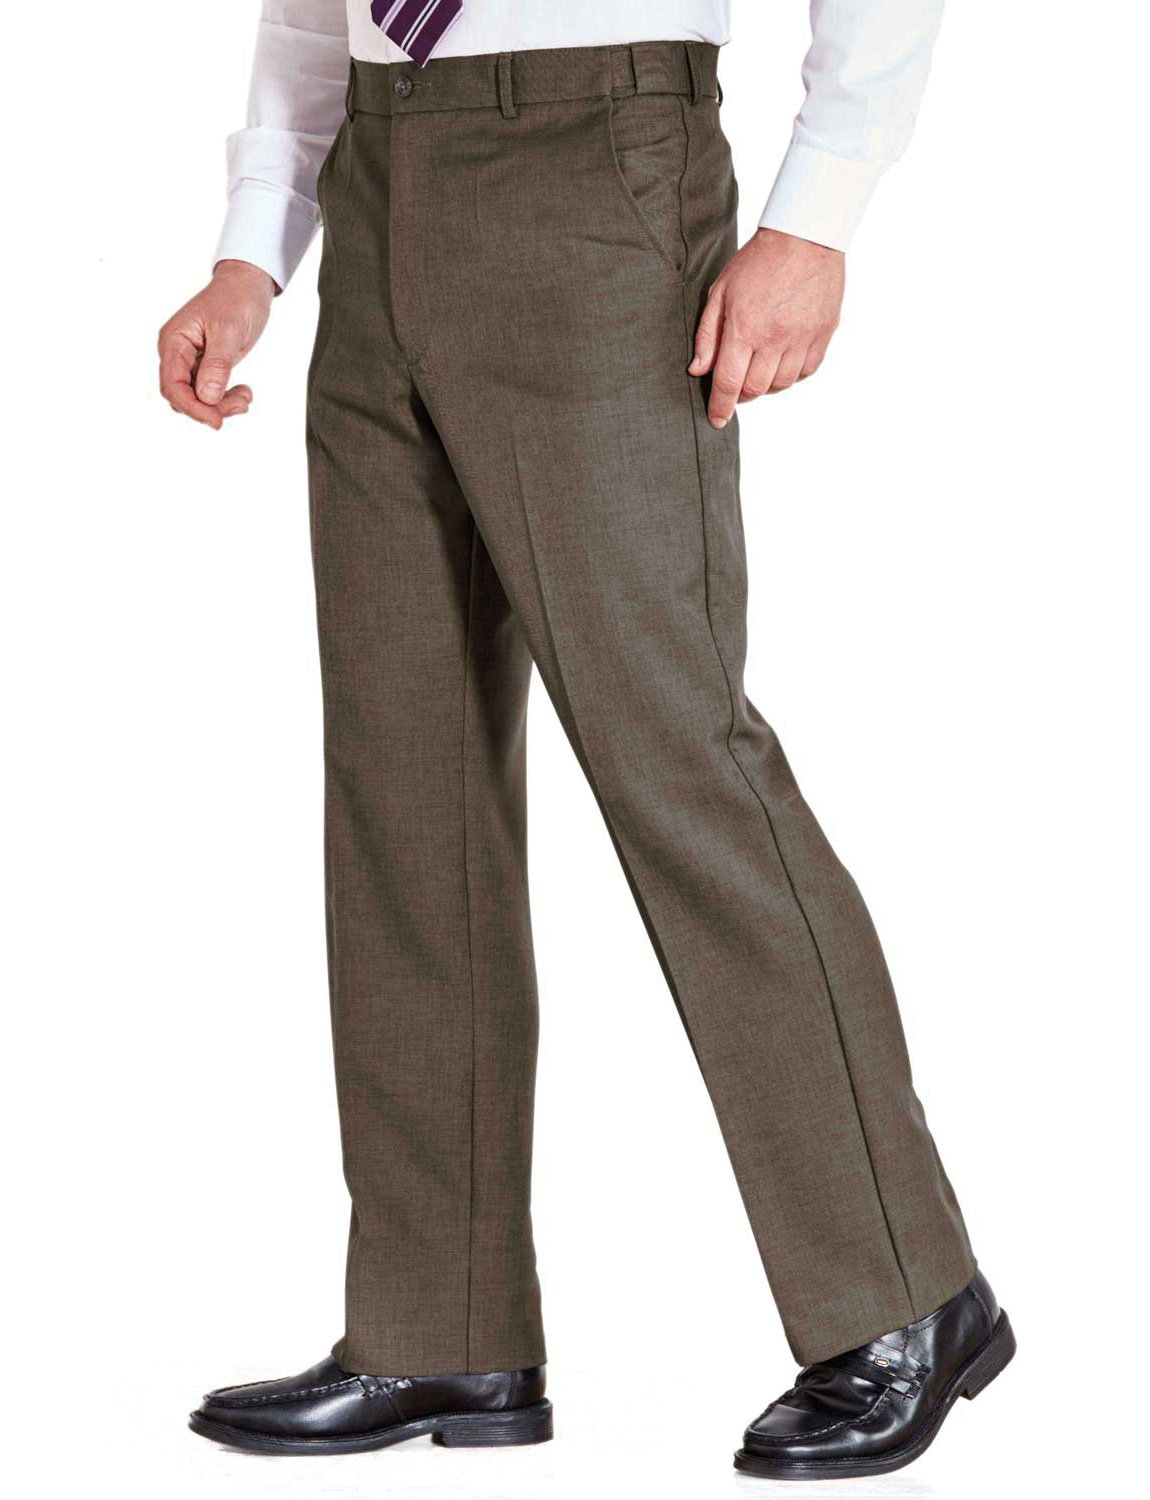 Farah Mens Flex Trouser With Self-Adjusting Waistband